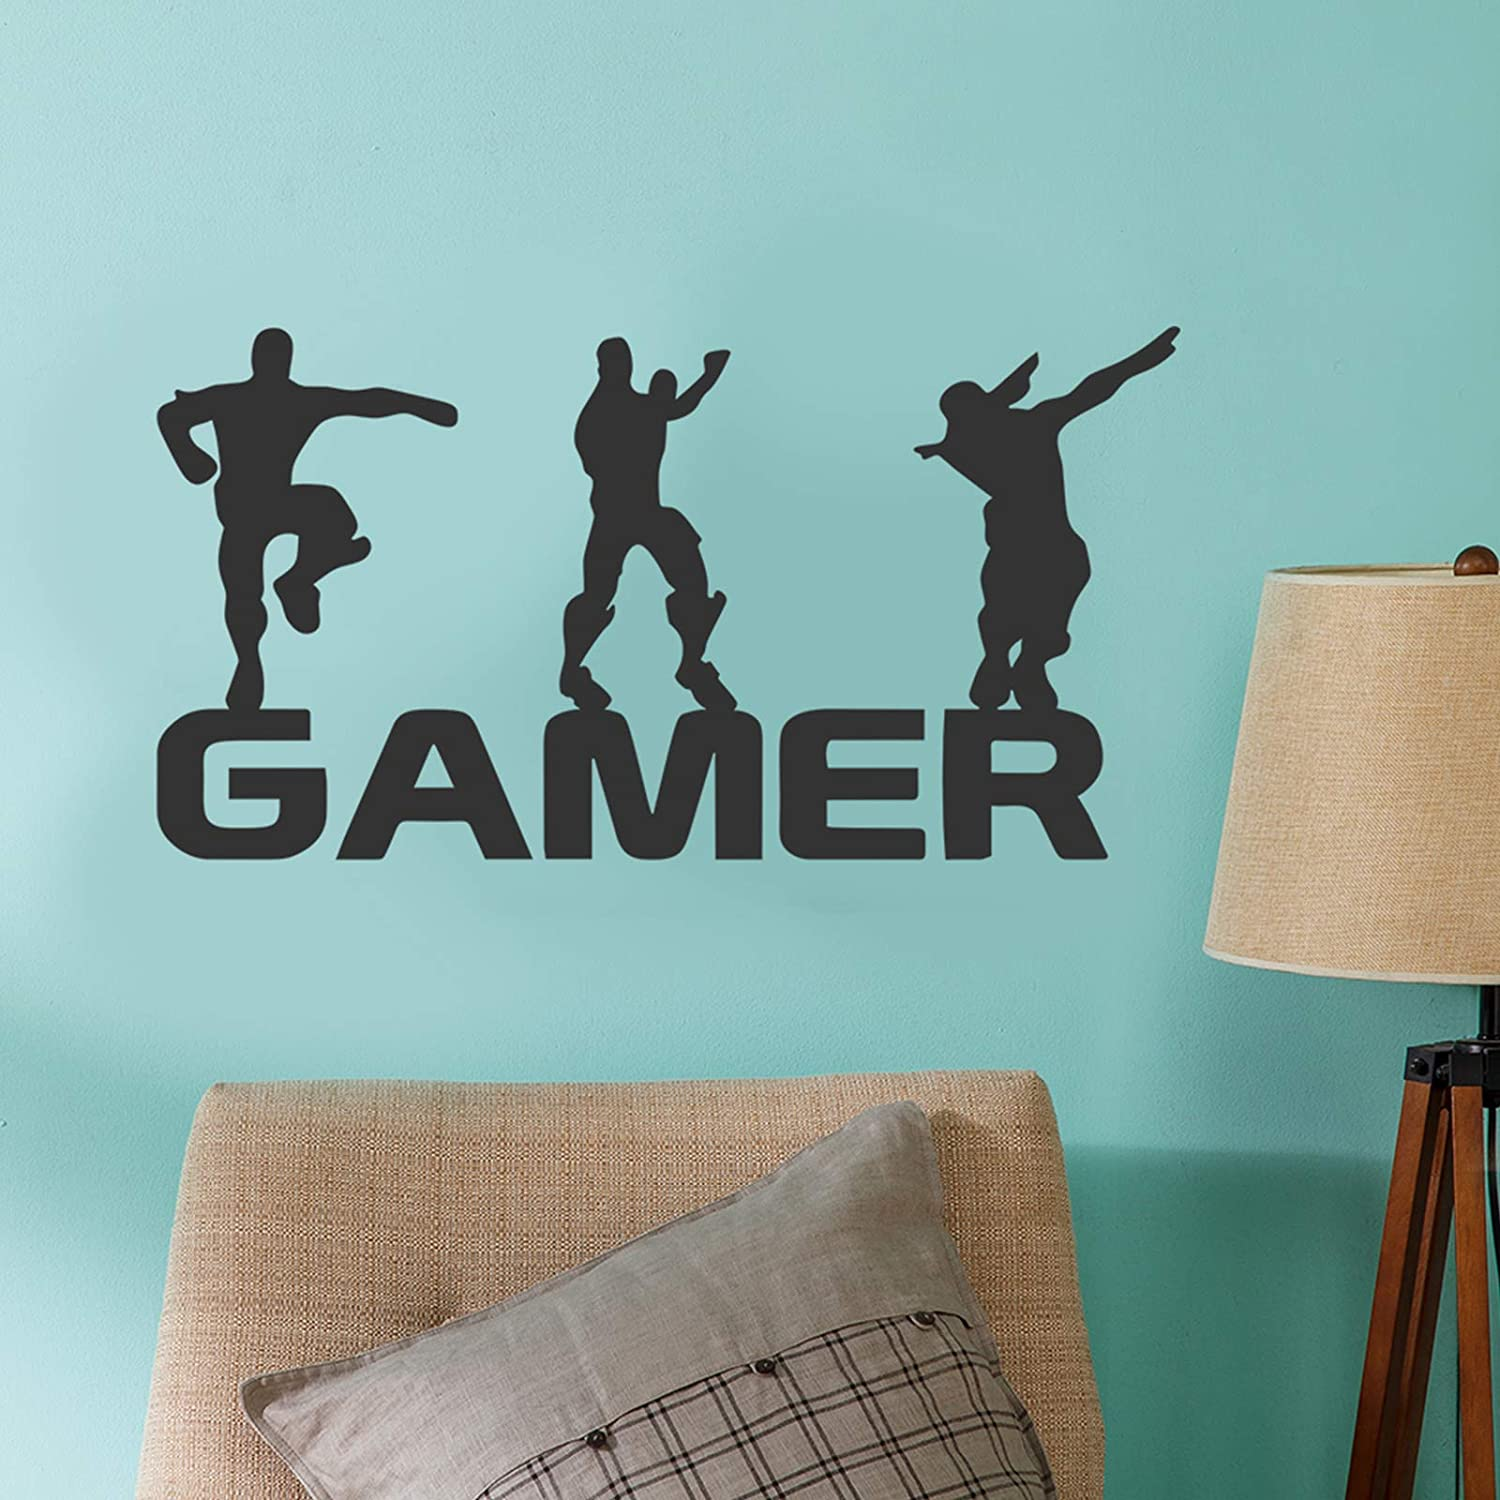 Gamer Wall Decals-Poster Decals Floss Dancing,Gamer Room Decor for Boys,Wall Sticker for Nursery Kids Room Removable Wall Vinyl Decal Game Stickers 08